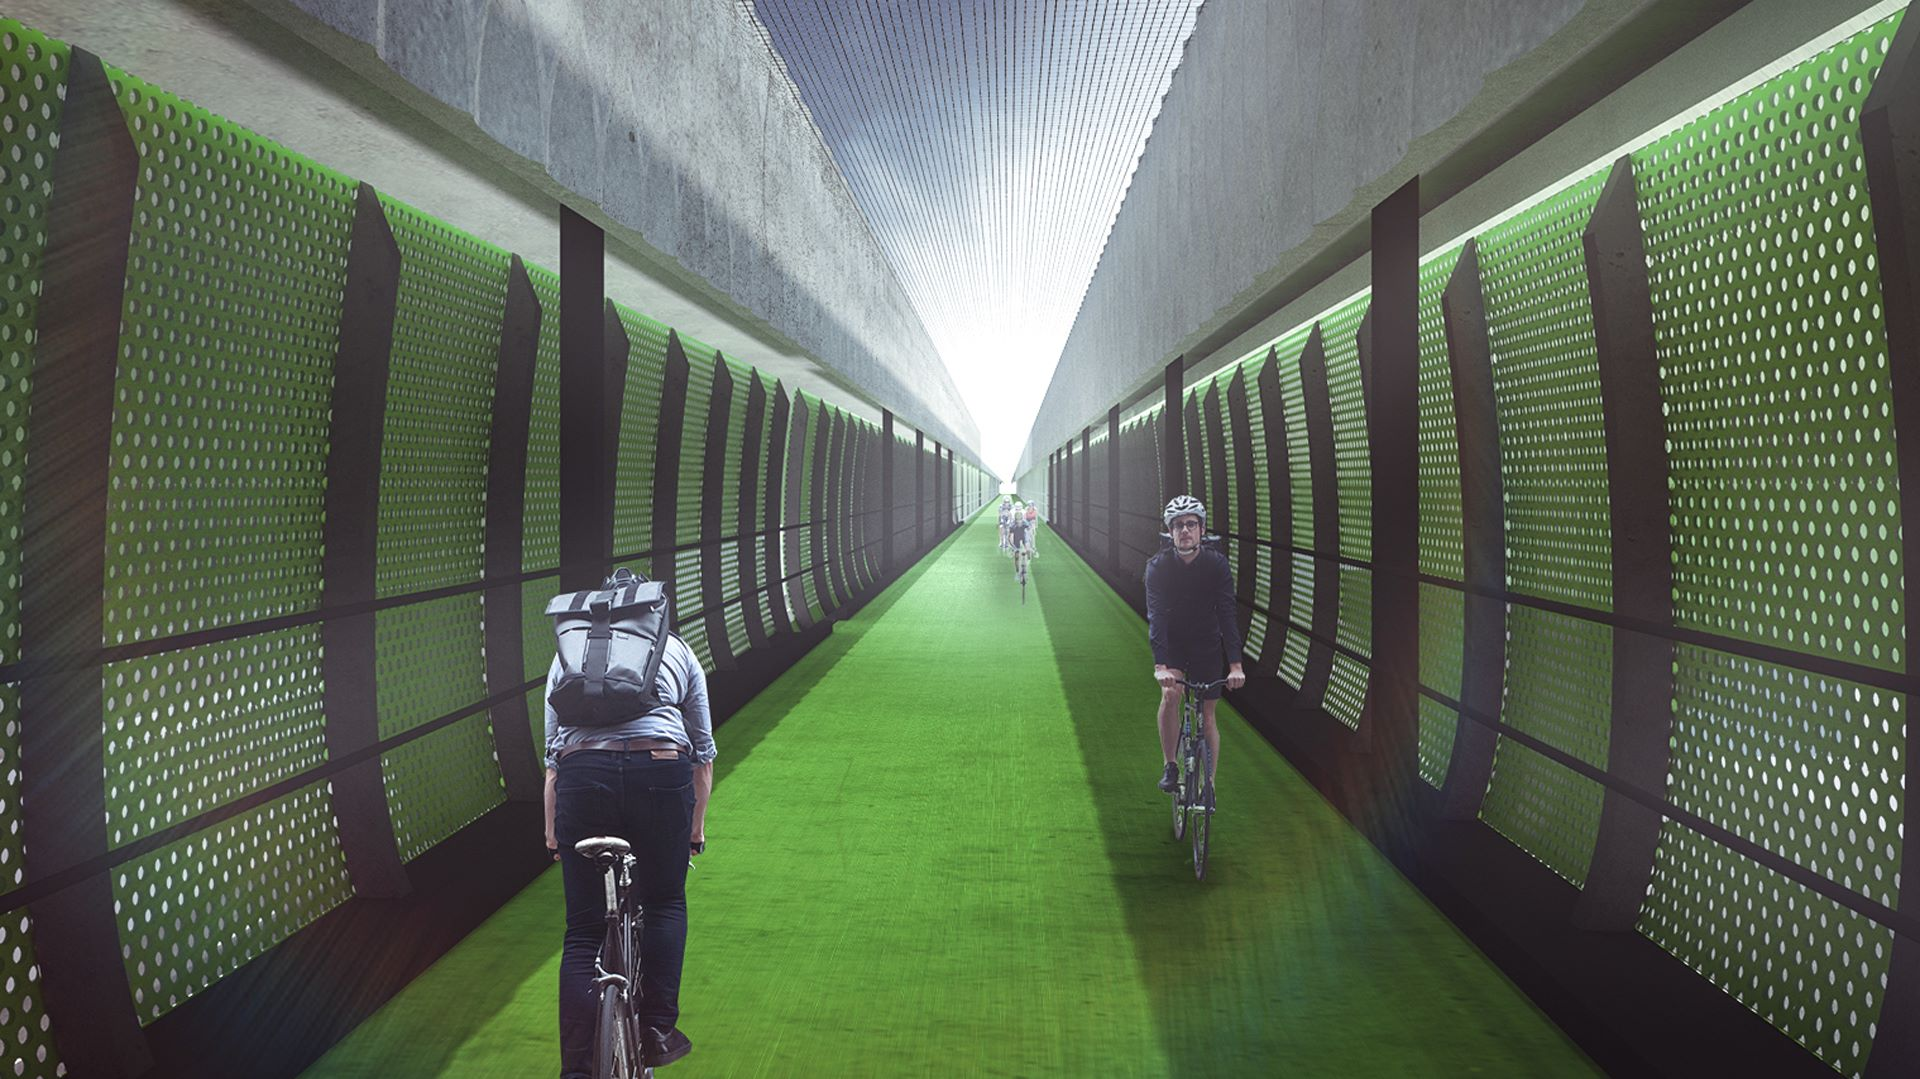 Artist's impression of cyclists using the veloway.